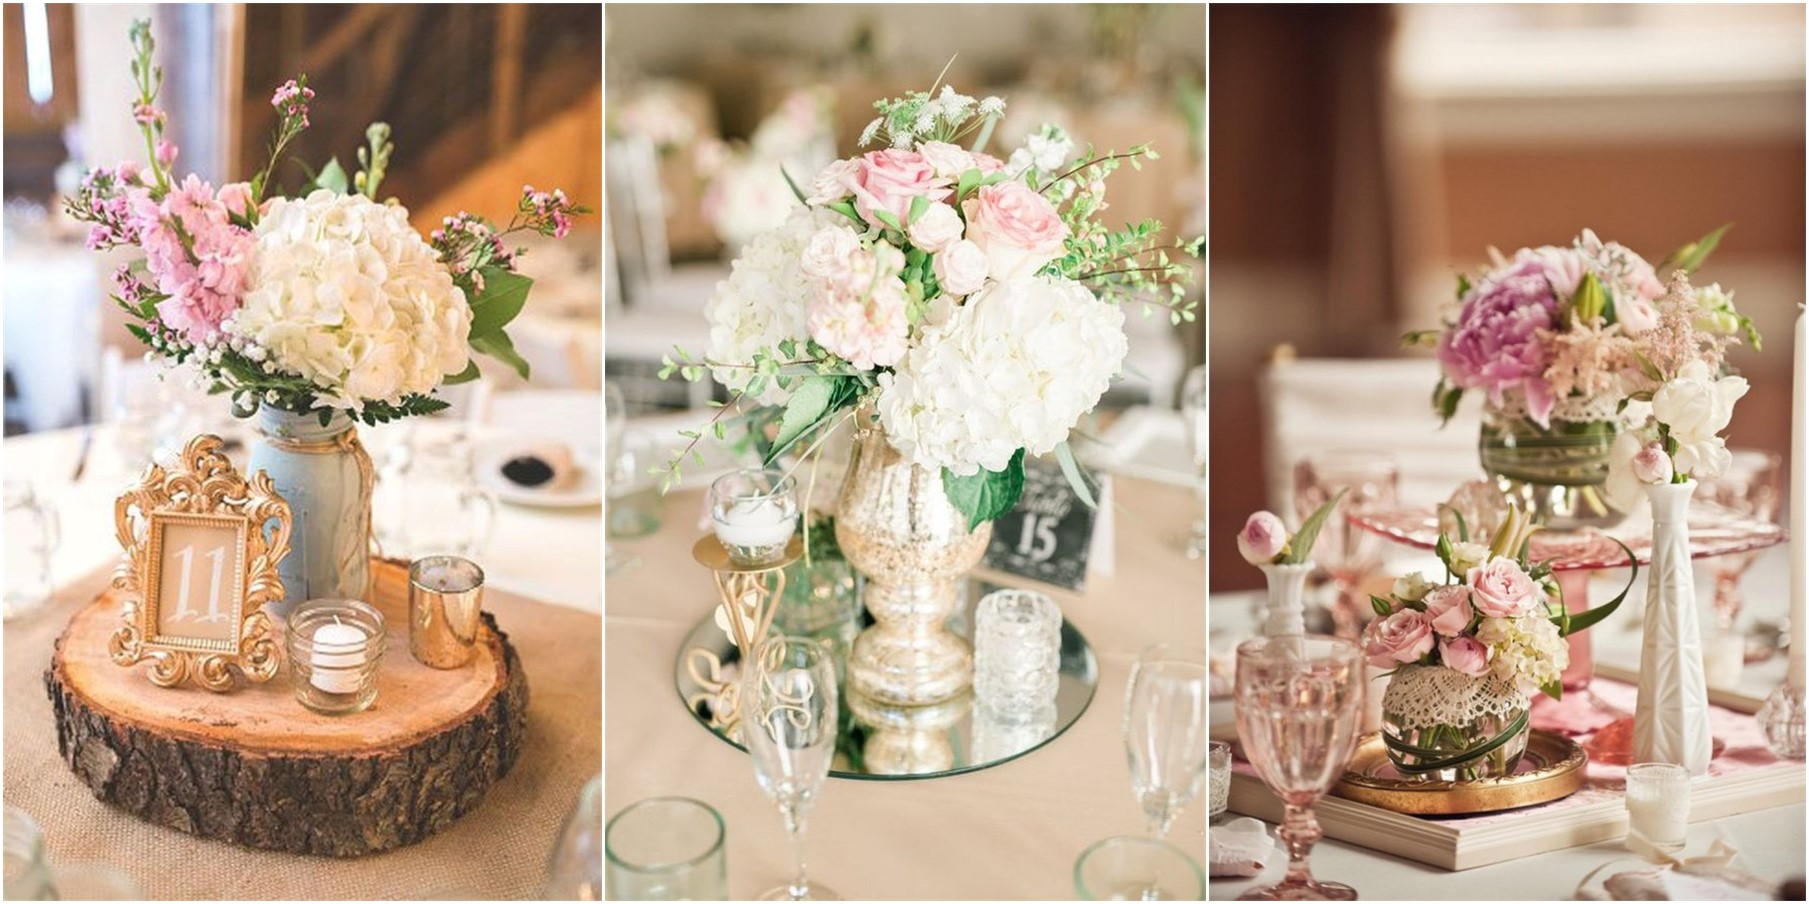 26 Vintage Wedding Centerpieces That Take Your To A New Level